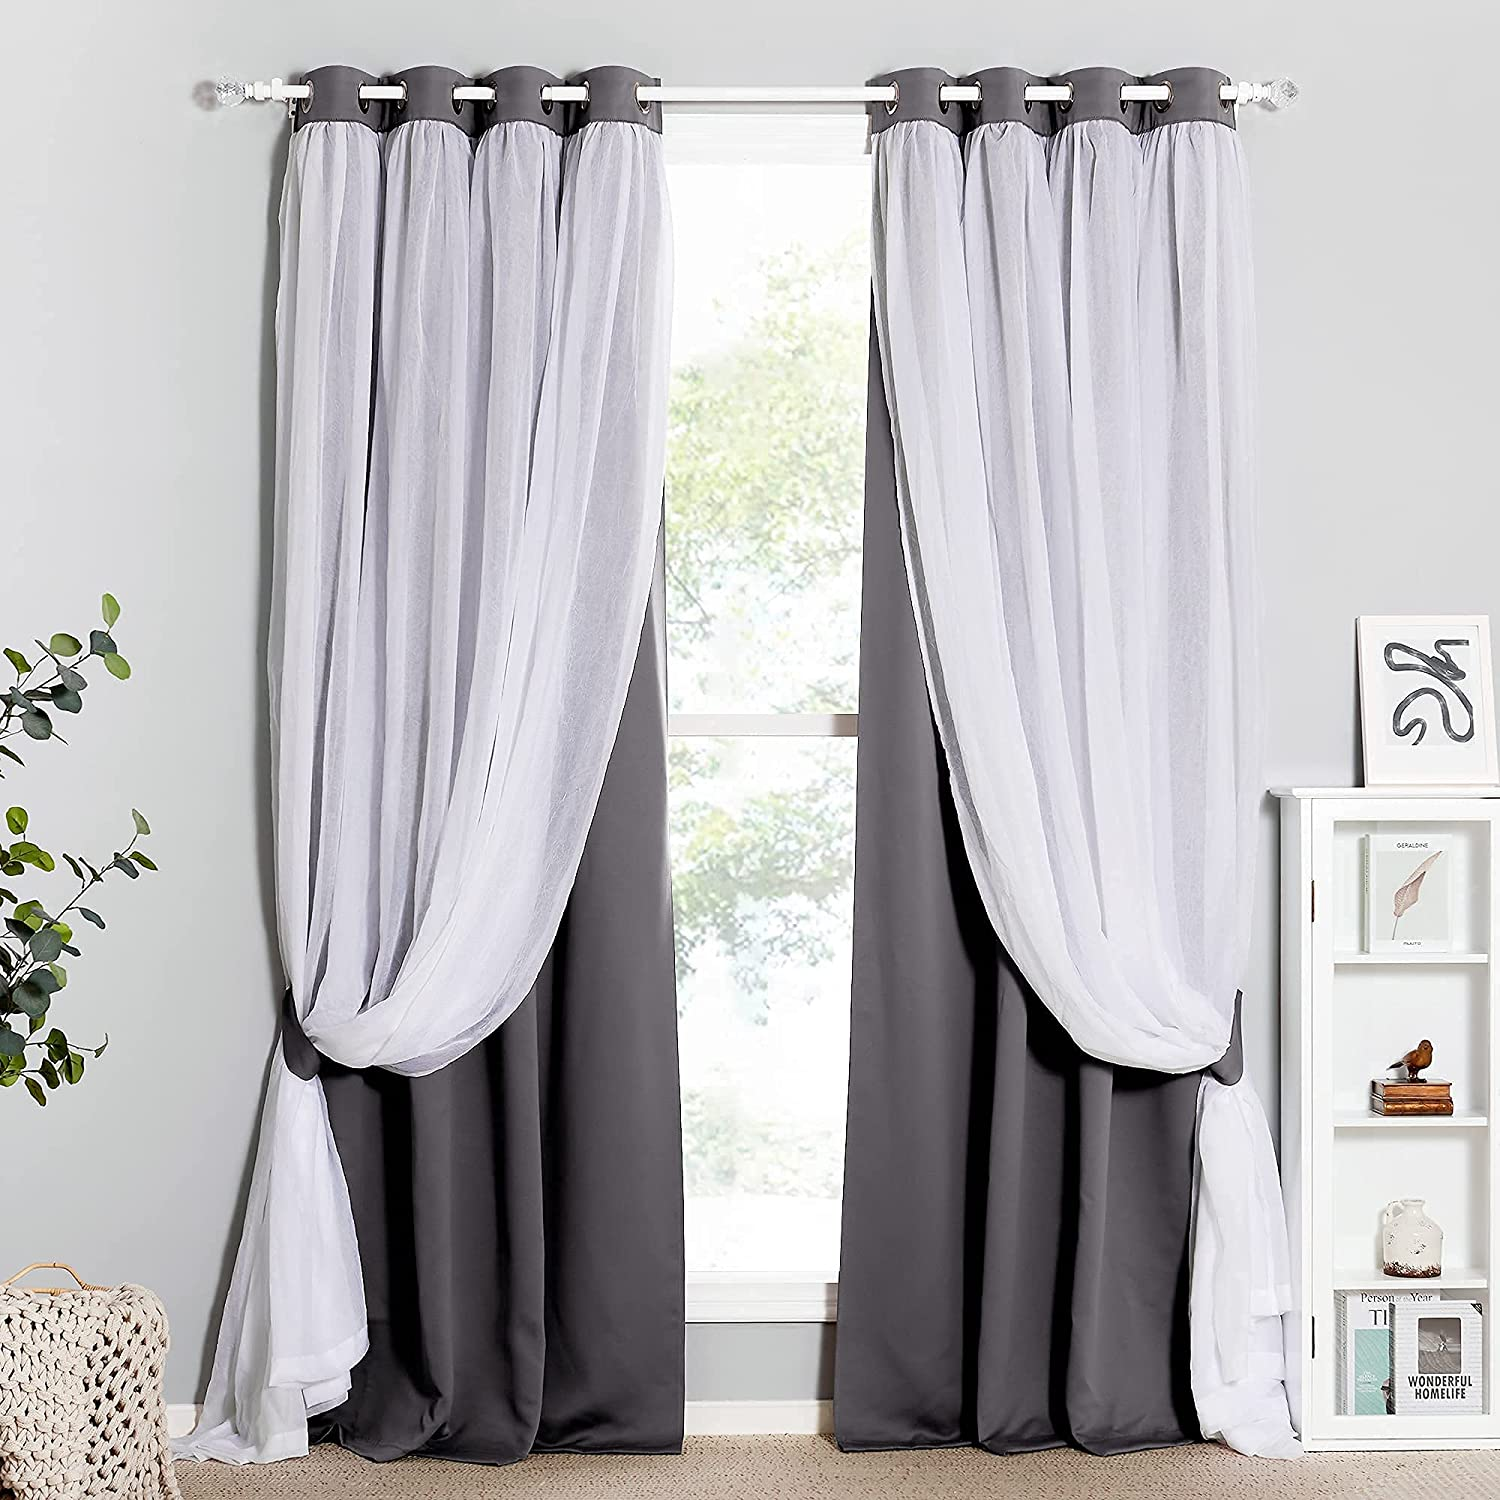 PONY Cheap super special price DANCE Living Room Blackout Curtains E Match Al sold out. Stylish - Mix